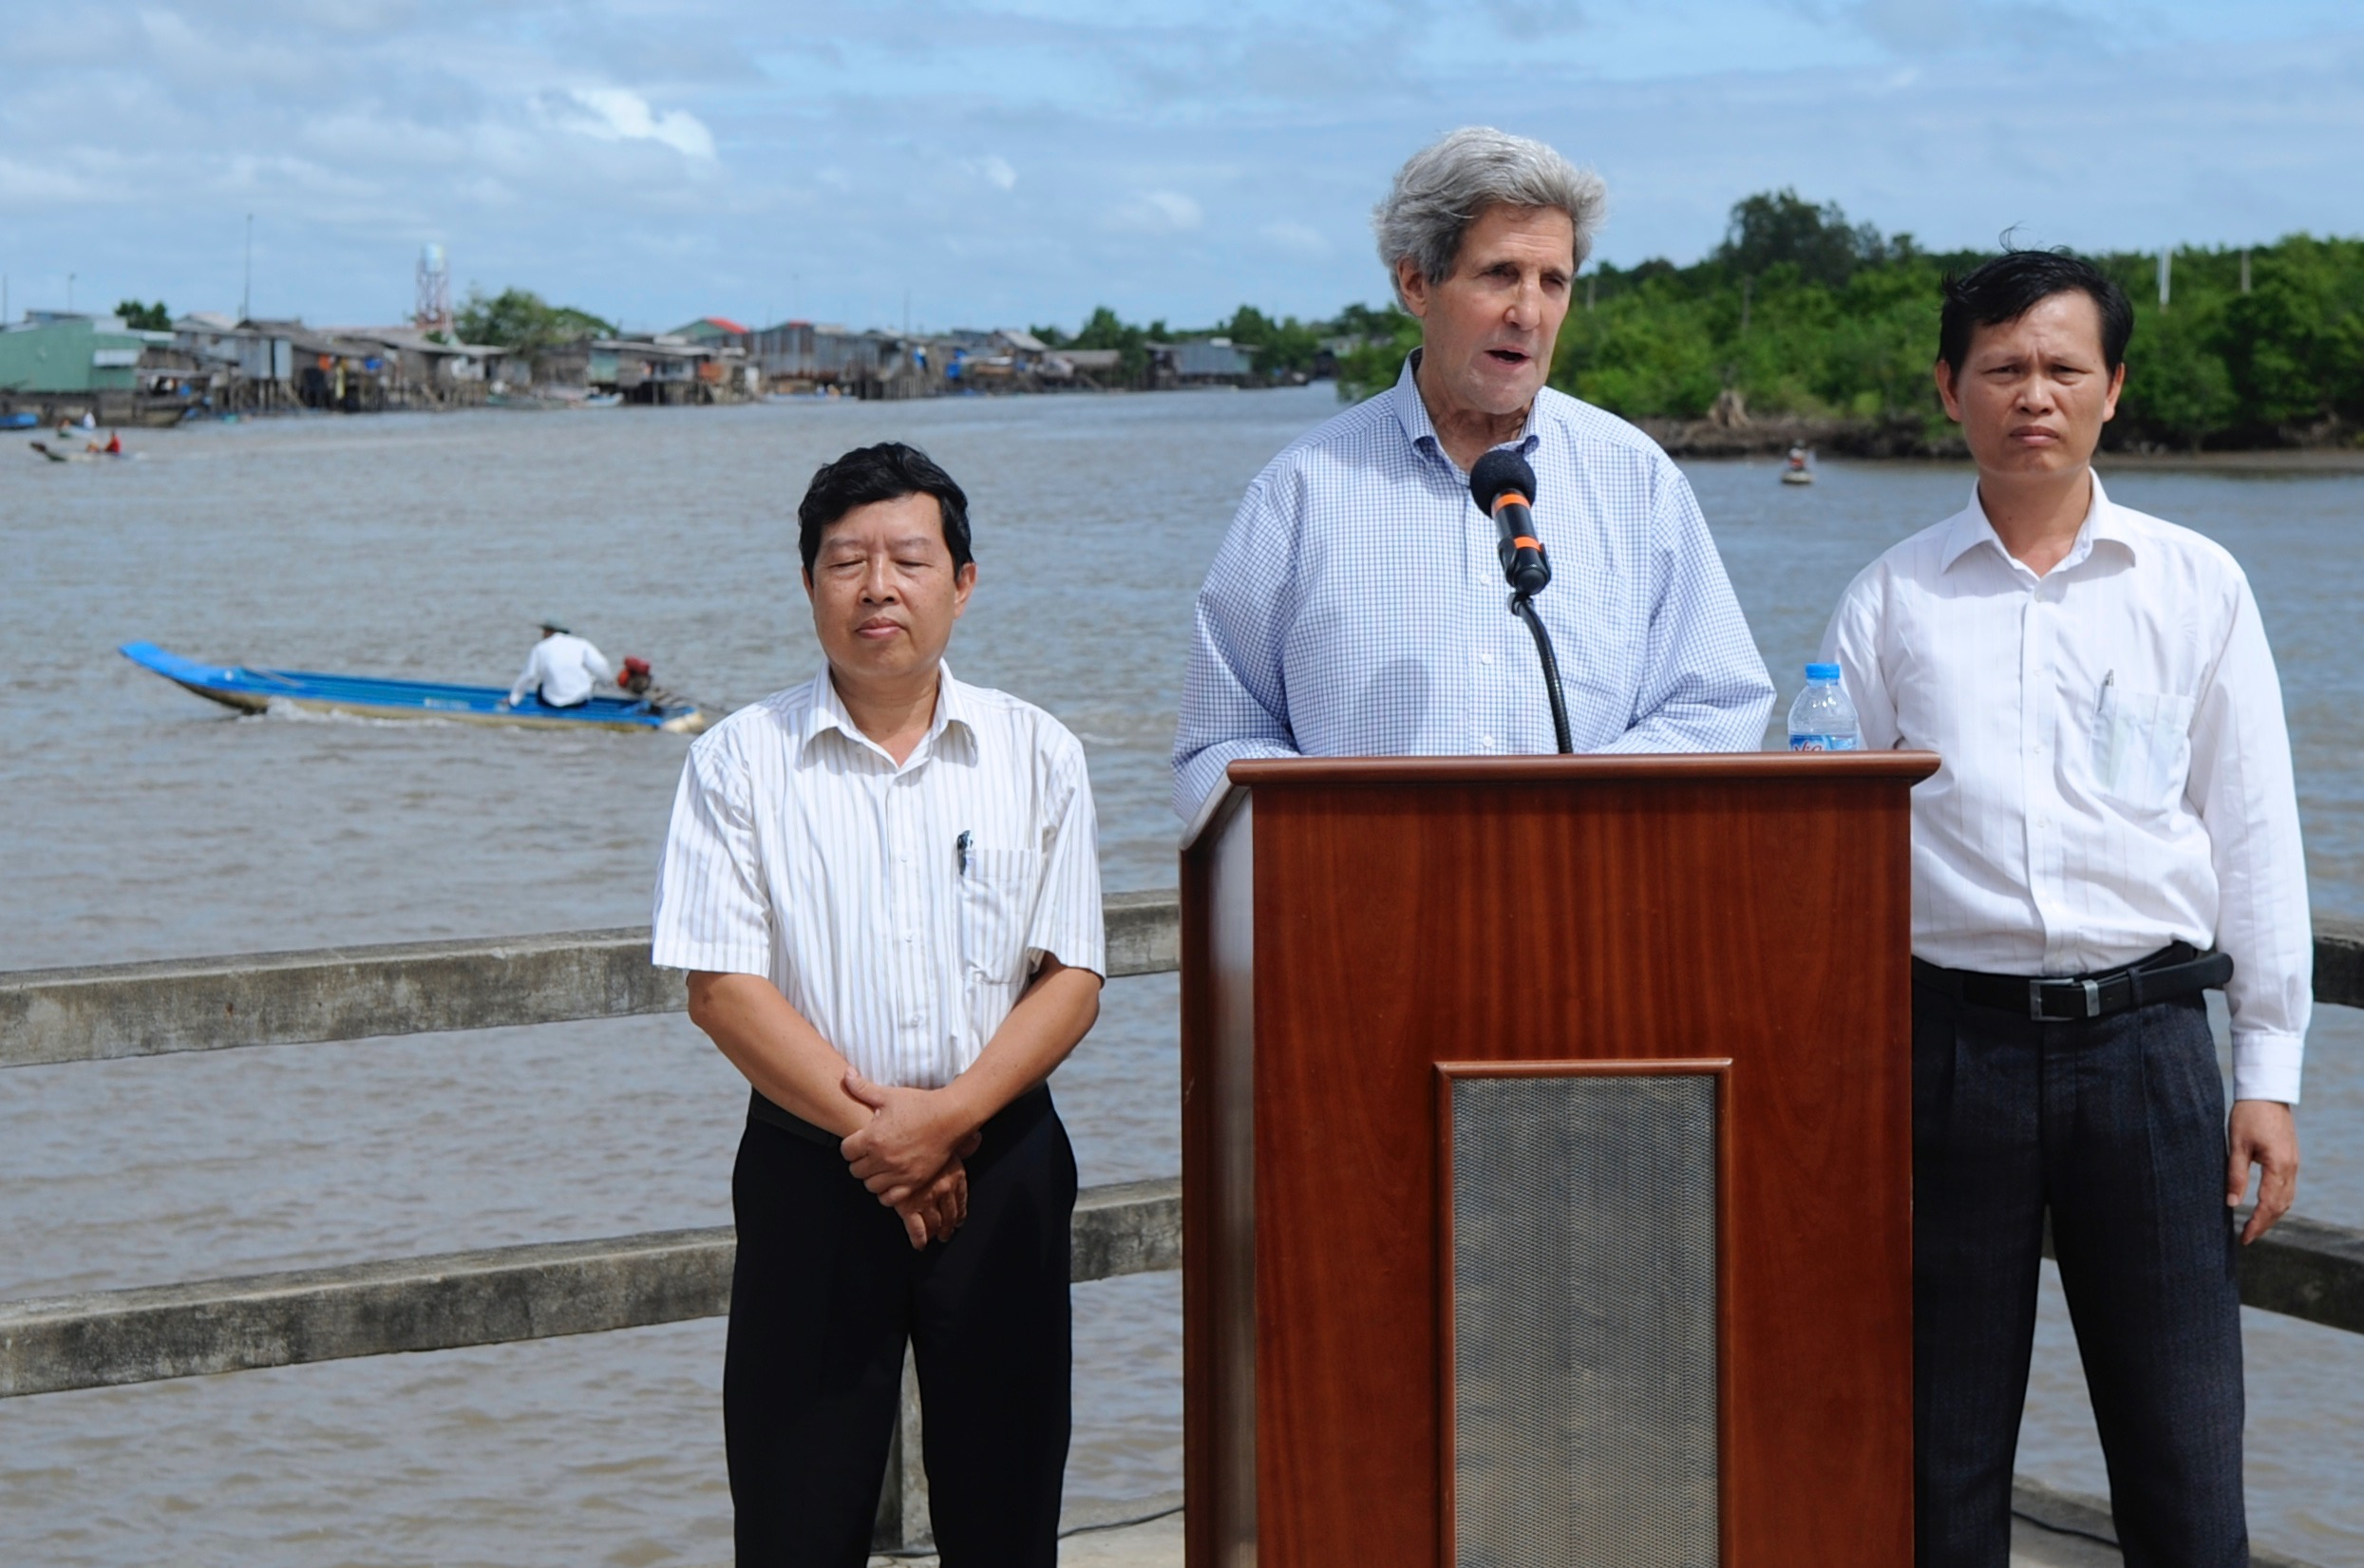 Secretary Kerry delivers an environmental speech amid our first trip up the Mekong River Delta.